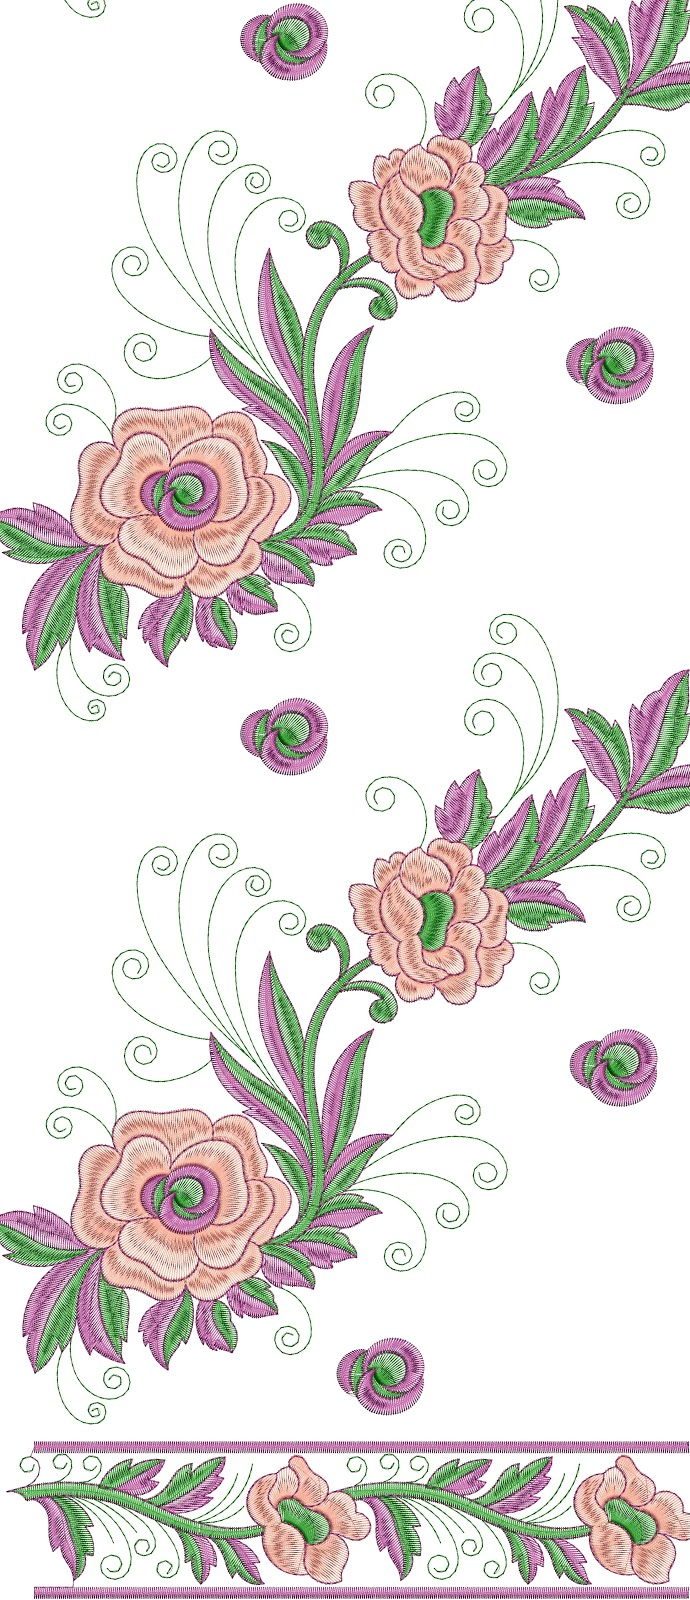 Embdesigntube punjabi dupatta embroidery design free download